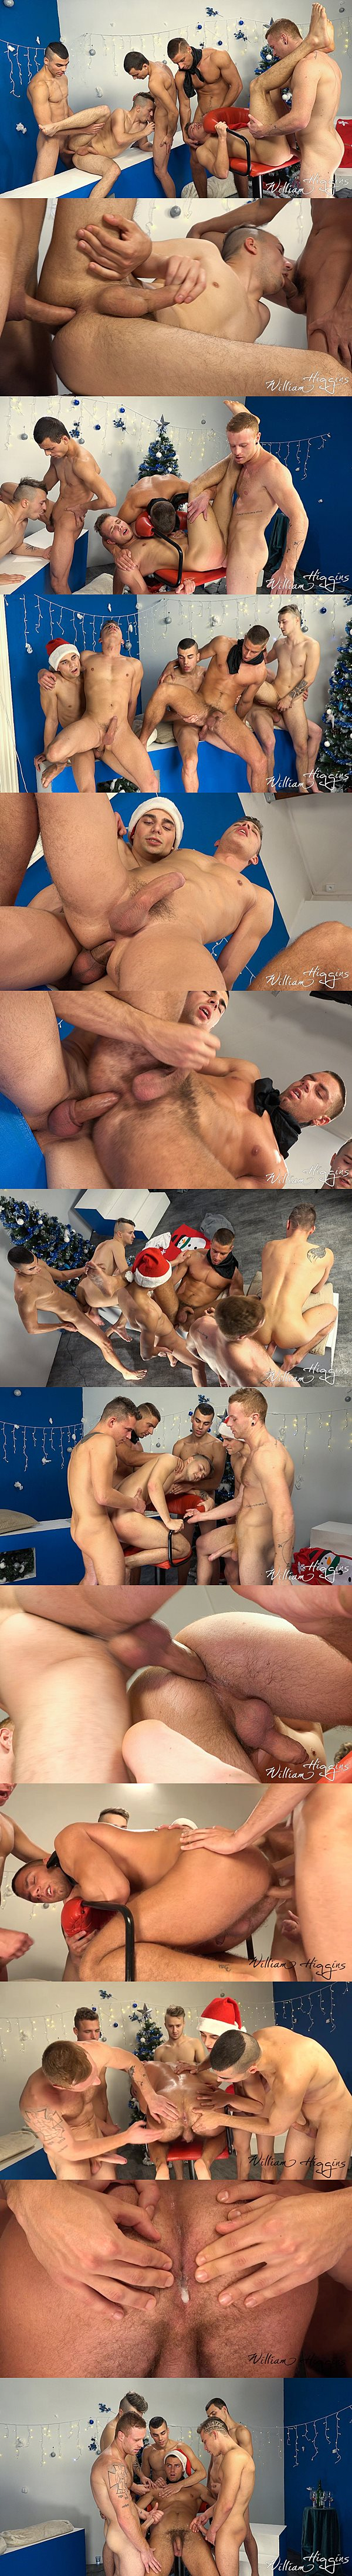 Petr Zuska, Romi Zuska & Tom Vojak Bareback Arny Donan, Hugo Antonin & Tomas Hozman in Xmas Wank Party 2014 Part 2 RAW at Williamhiggins 02